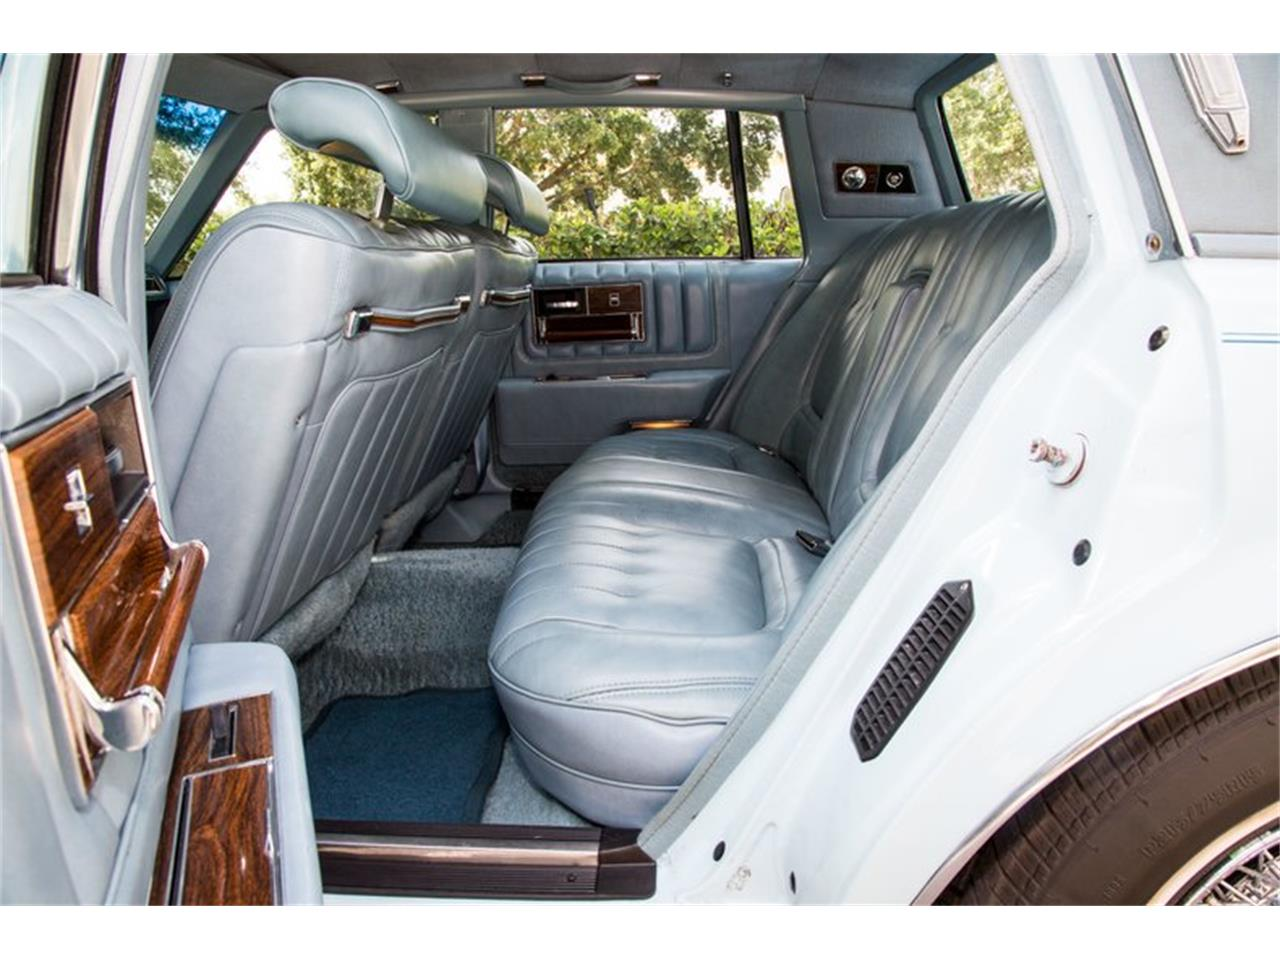 Large Picture of '78 Cadillac Seville - $12,900.00 - PX4J